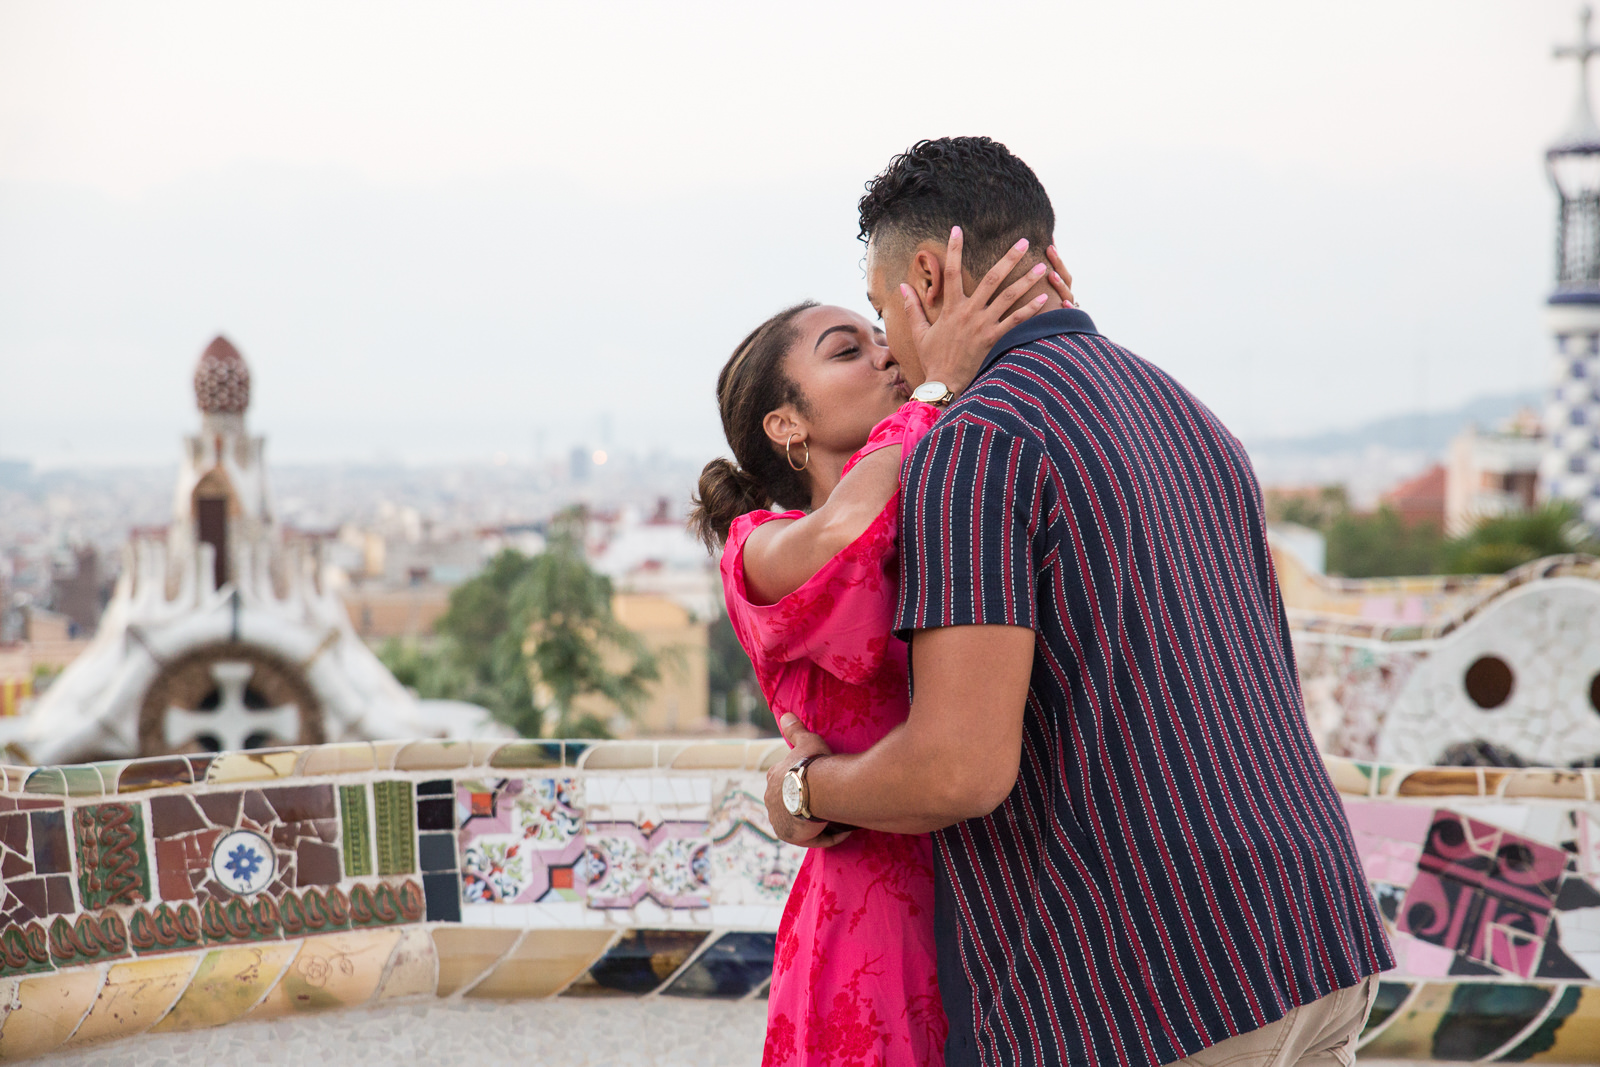 Marriage proposal in Barcelona | Natalia Wisniewska Photography